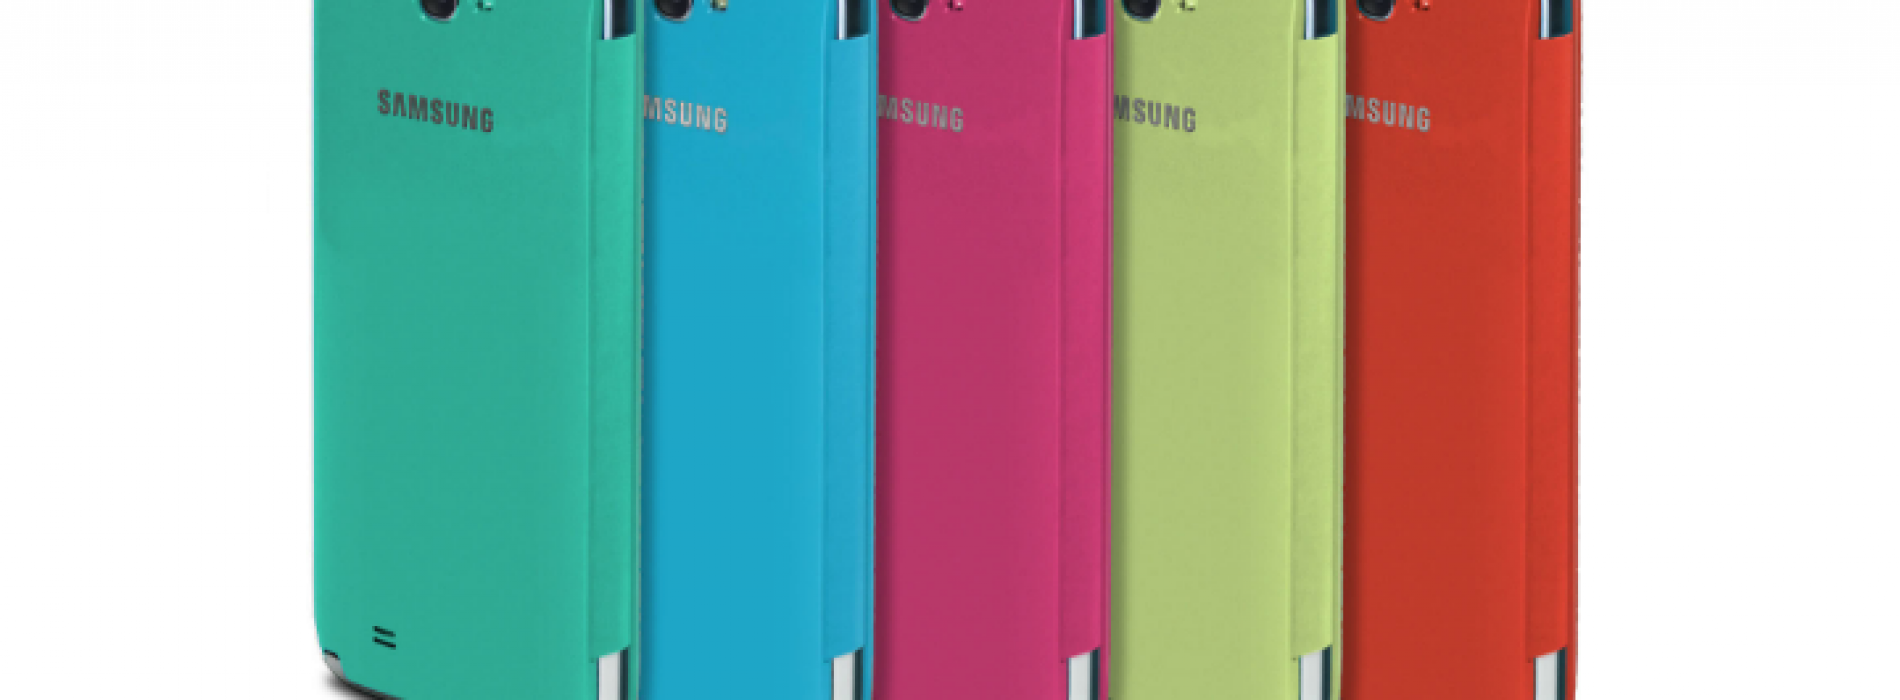 Samsung offering stylish new Flip Covers for Galaxy Note II, Galaxy S III